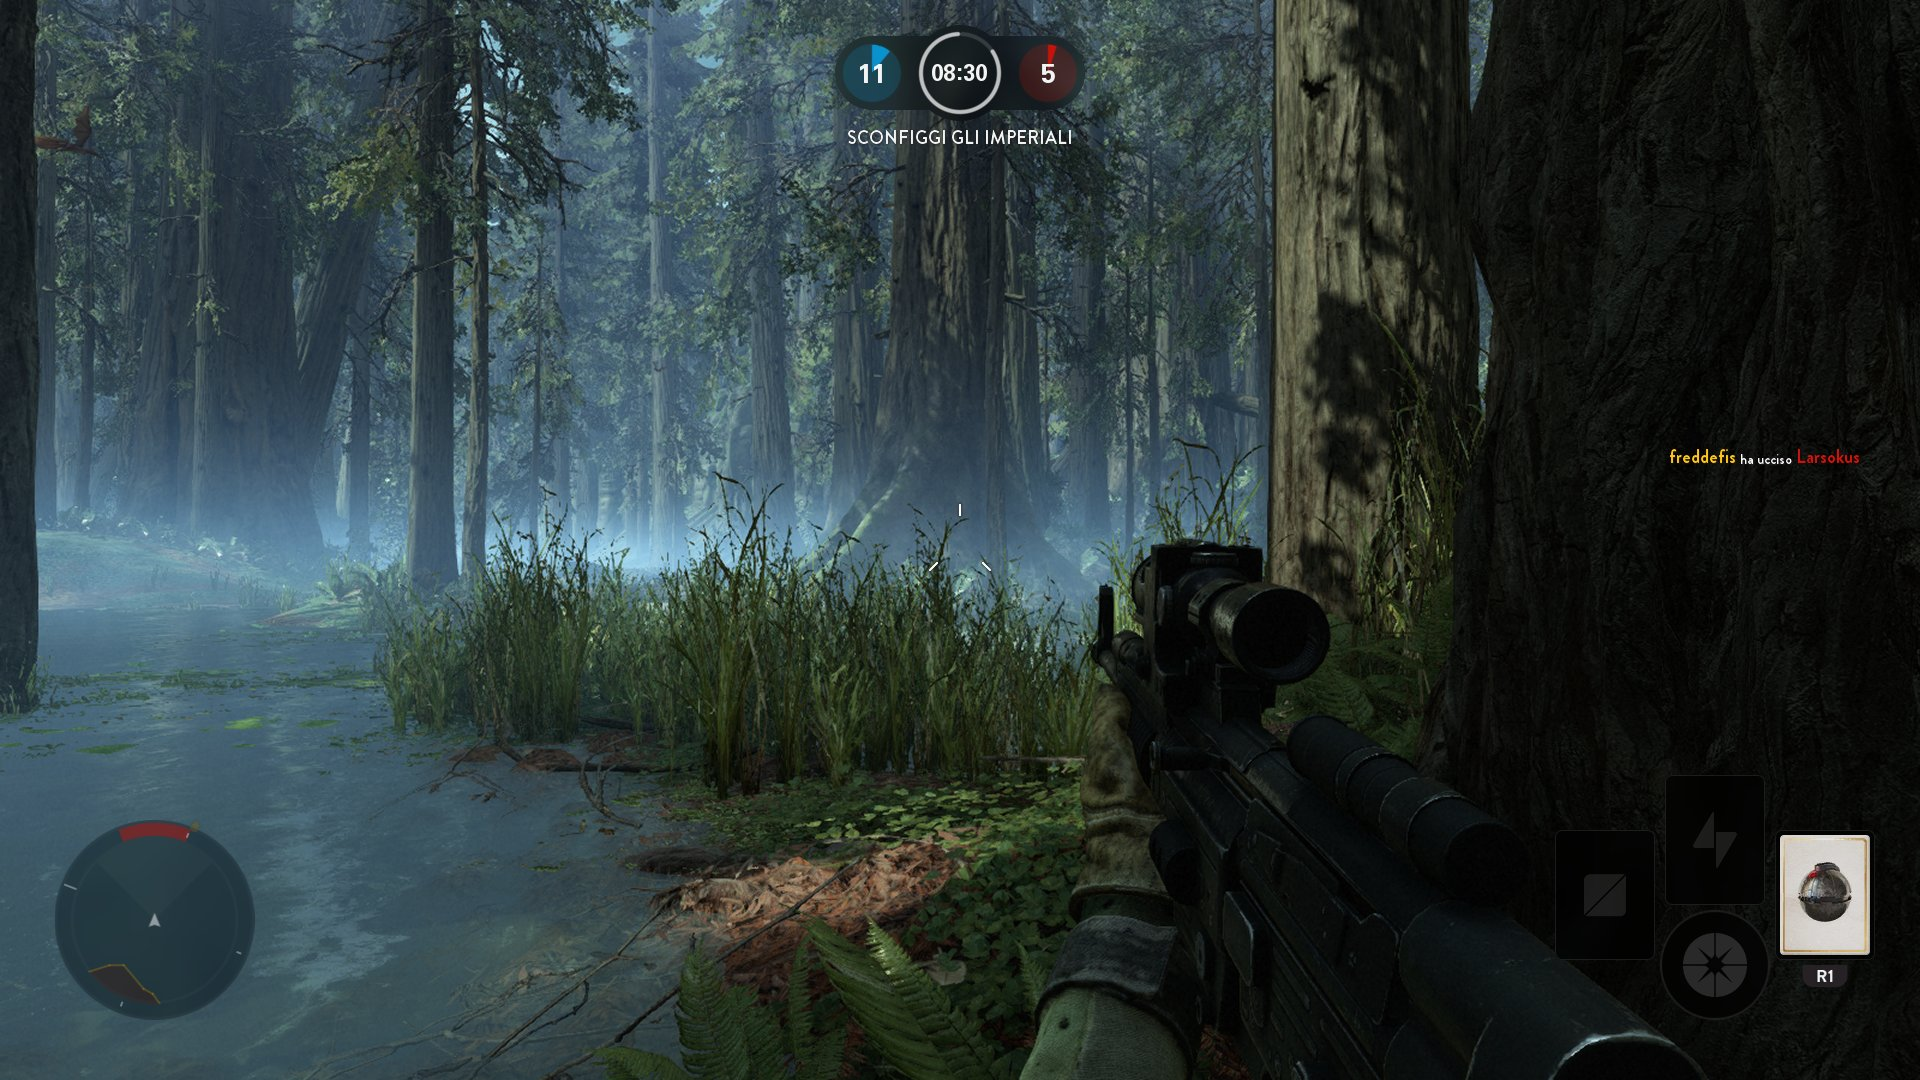 Star Wars: Battlefront - Endor